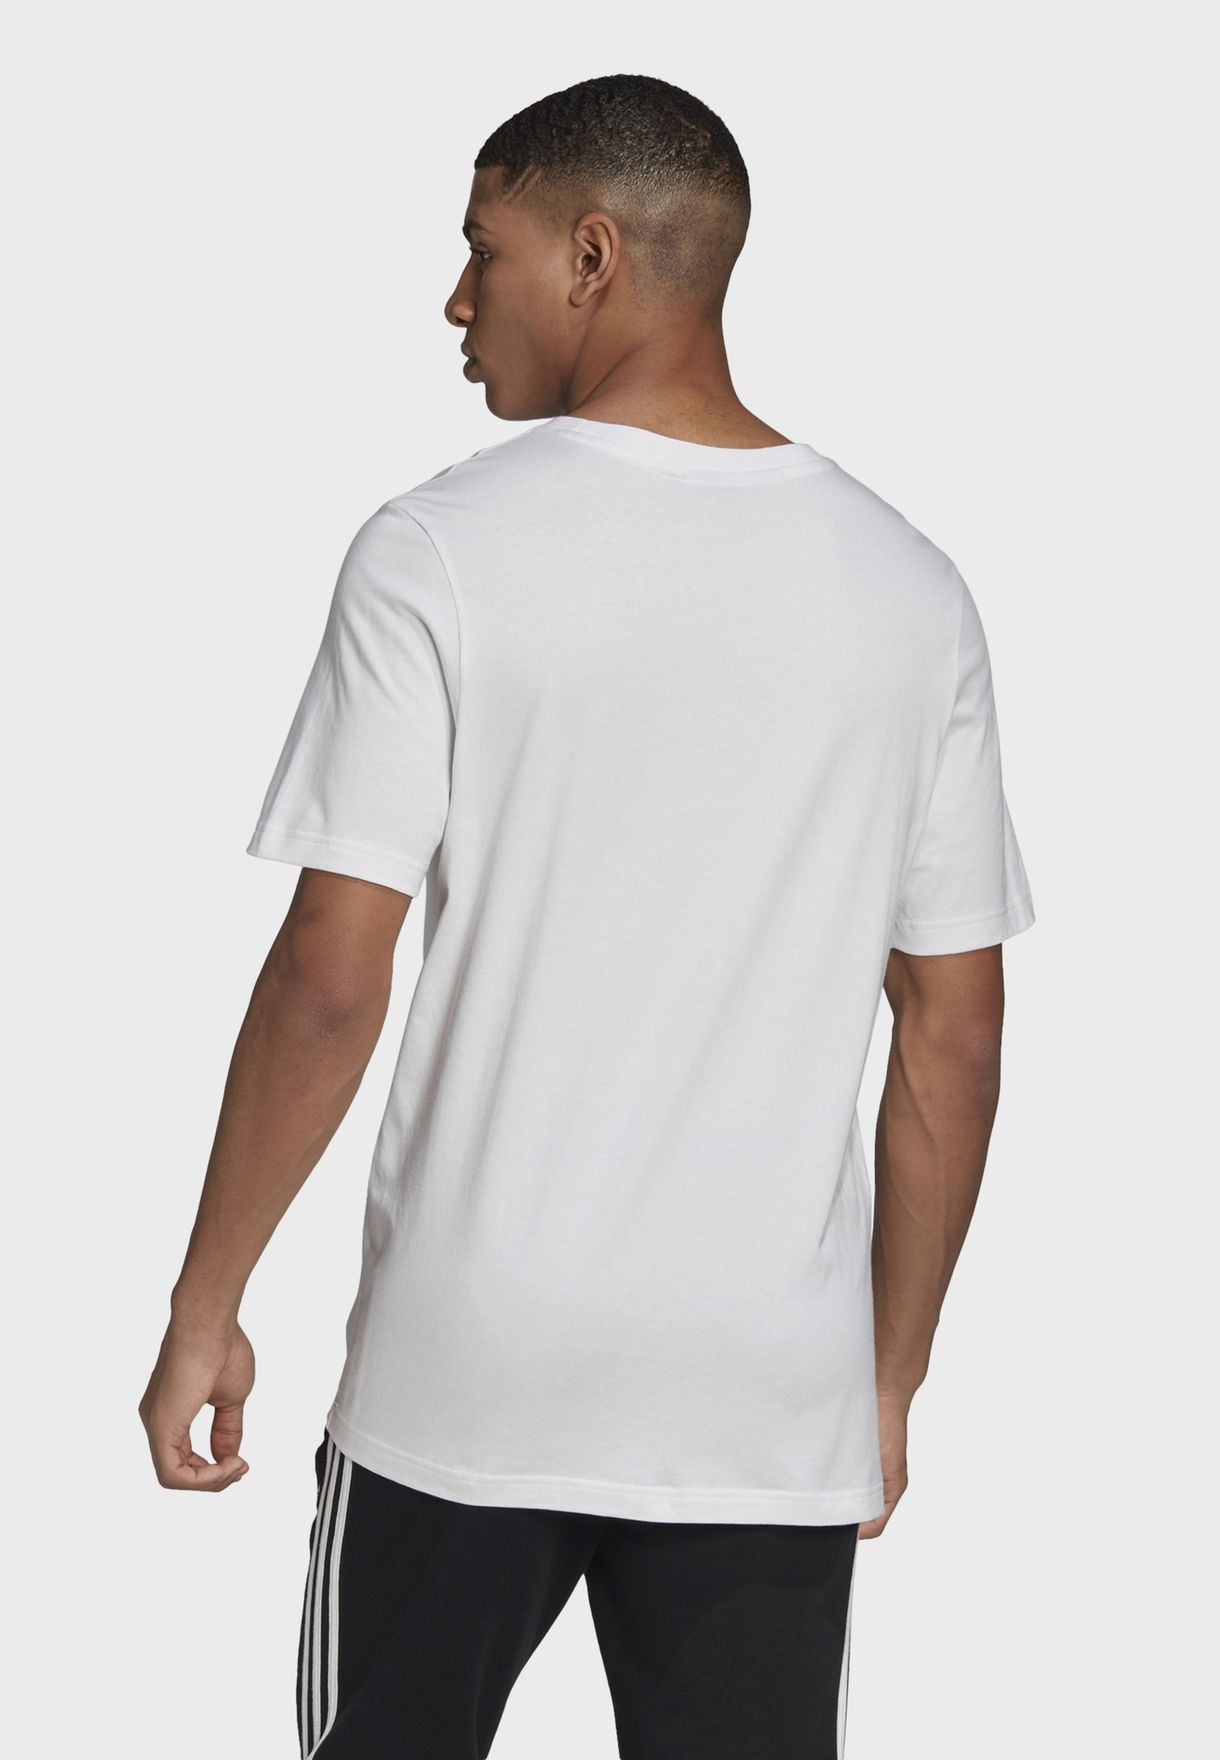 3 Stripes Sprt Collection Casual Men's T-Shirt